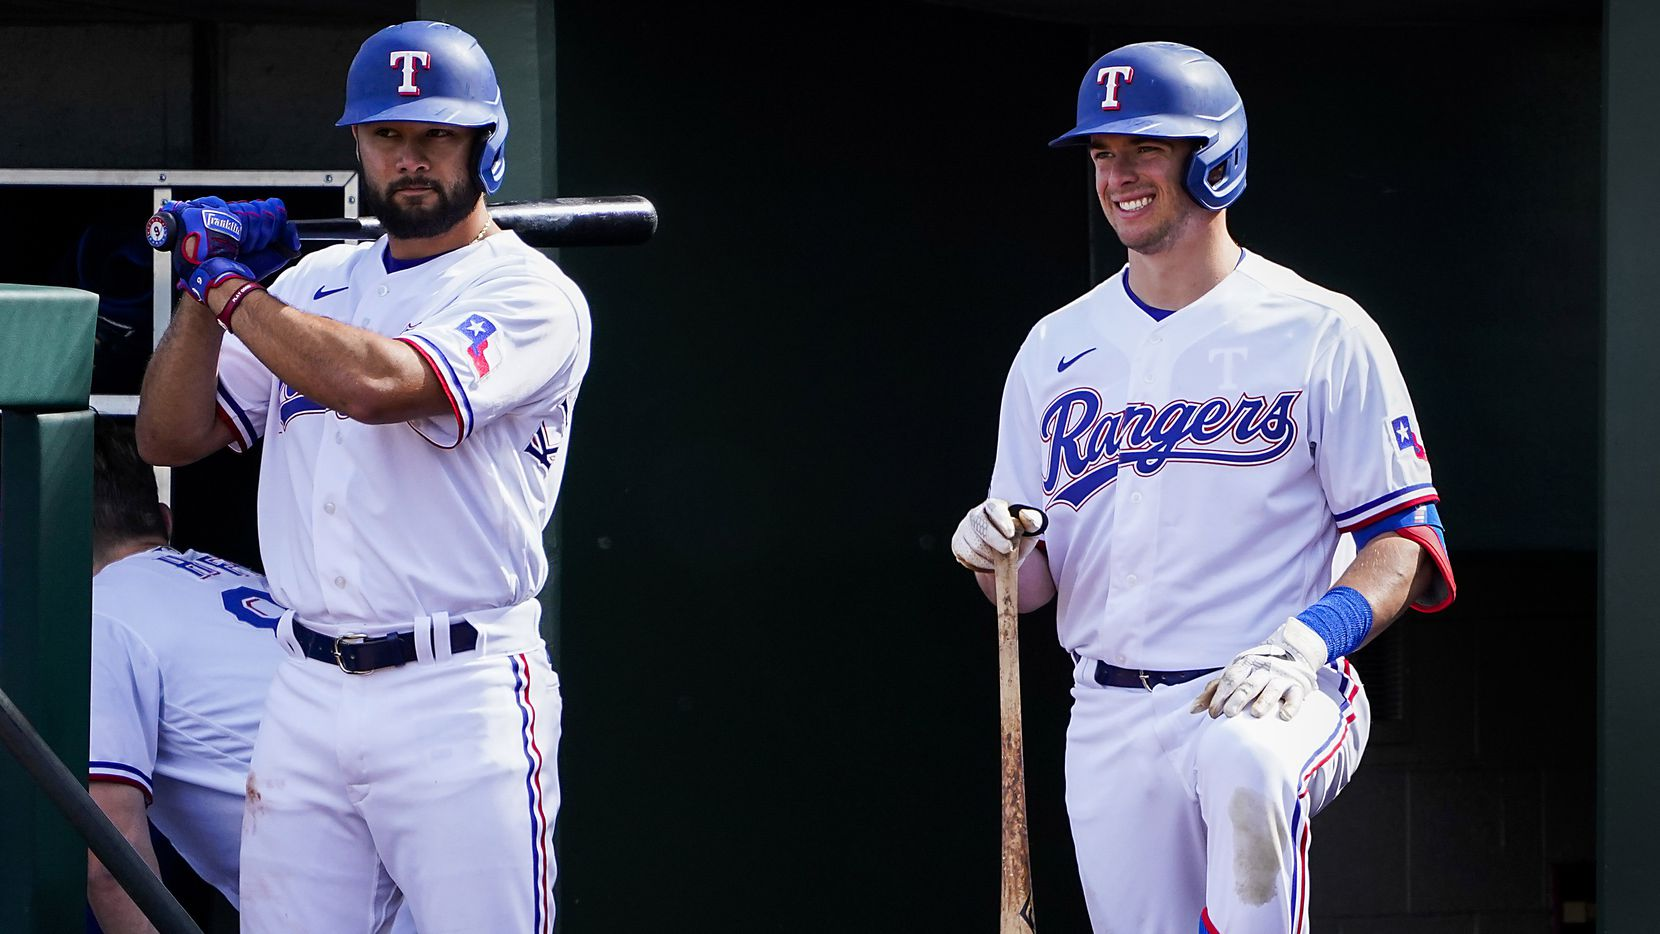 Texas Rangers infielder Isiah Kiner-Falefa (left) and infielder/outfielder Nick Solak wait to bat during the fifth inning of a spring training game against the Chicago Cubs at Surprise Stadium on Thursday, Feb. 27, 2020, in Surprise, Ariz.